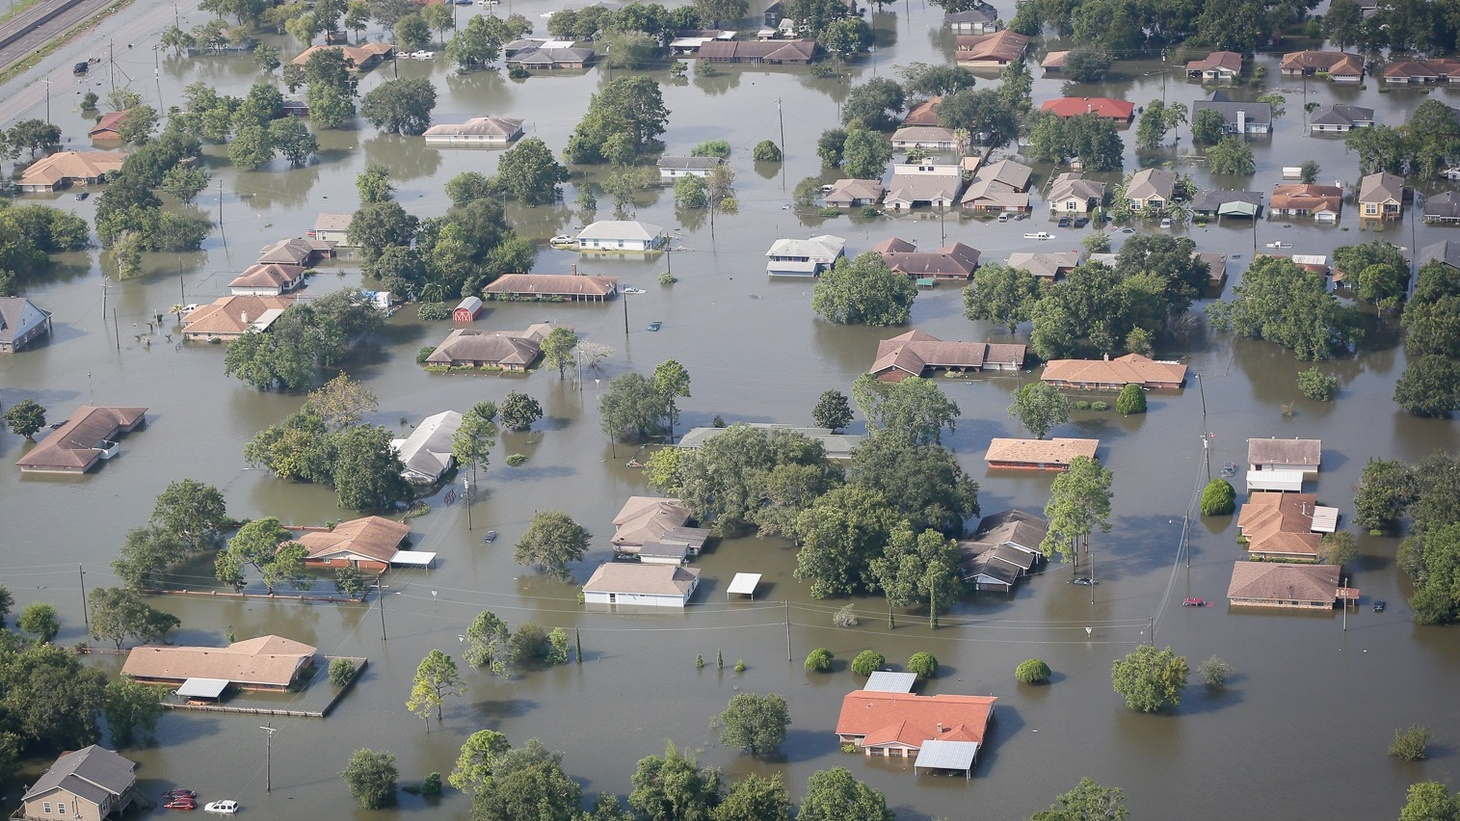 It's not just Houston, but much of the Gulf Coast--suffering record damage with Hurricane Season just beginning. We'll hear how Harvey compares to other storms in the rest of the world and what it could mean for the future.